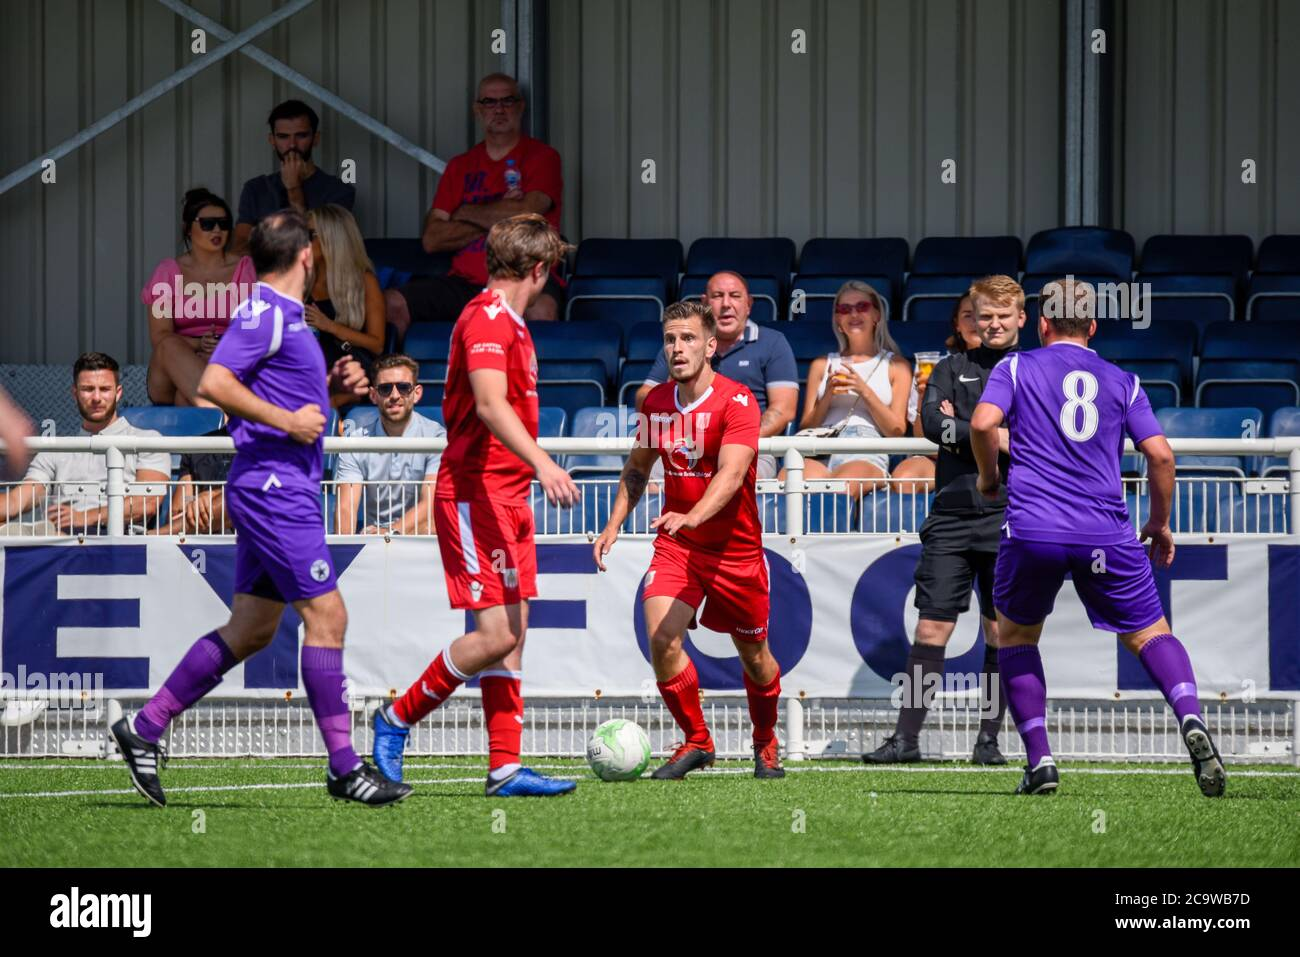 parkside-football-ground-aveley-essex-uk-2nd-aug-2020-with-the-clearance-given-for-team-sports-to-recommence-after-the-covid-19-coronavirus-lockdown-the-teams-in-the-uk-are-beginning-friendly-matches-in-front-of-small-crowds-in-preparation-for-competitive-matches-in-september-the-alex-rungay-memorial-cup-took-place-at-aveleys-ground-and-saw-four-sunday-league-teams-compete-for-the-trophy-in-memory-of-alex-who-passed-away-when-manager-of-fc-utd-of-hornchurch-one-of-the-teams-competing-red-team-v-acd-utd-in-purple-with-money-going-to-mind-charity-2C9WB7D.jpg